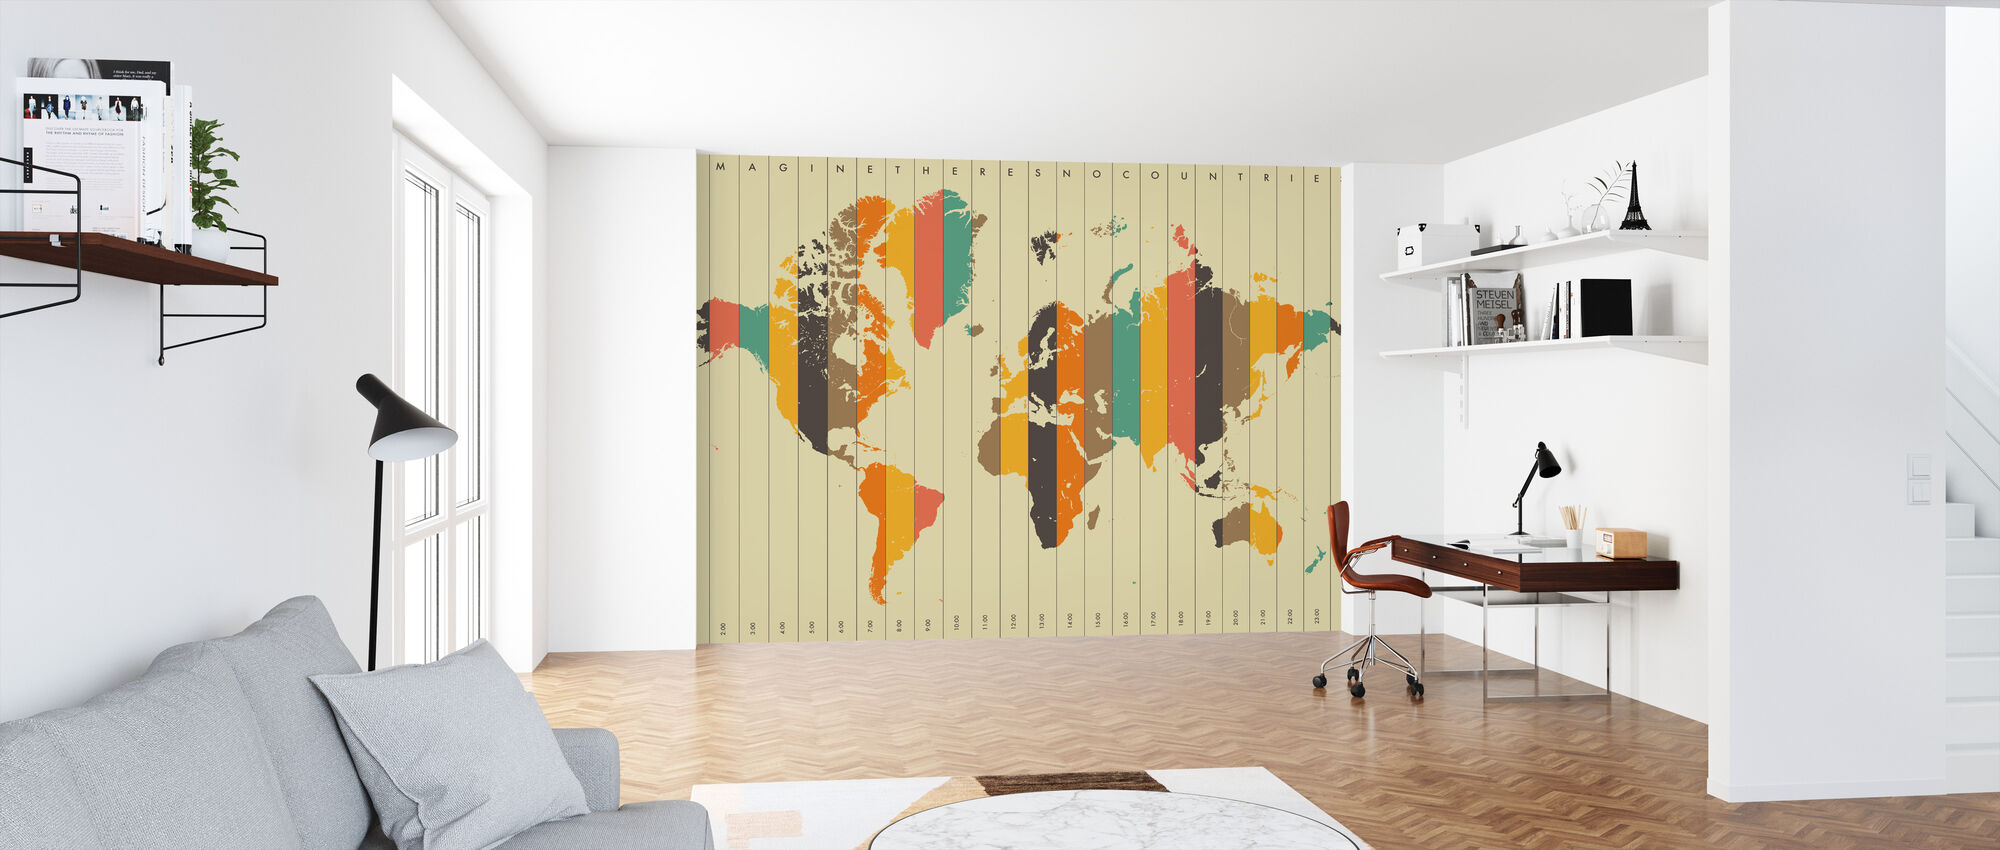 Imagine Theres No Countries - Beige - Wallpaper - Office